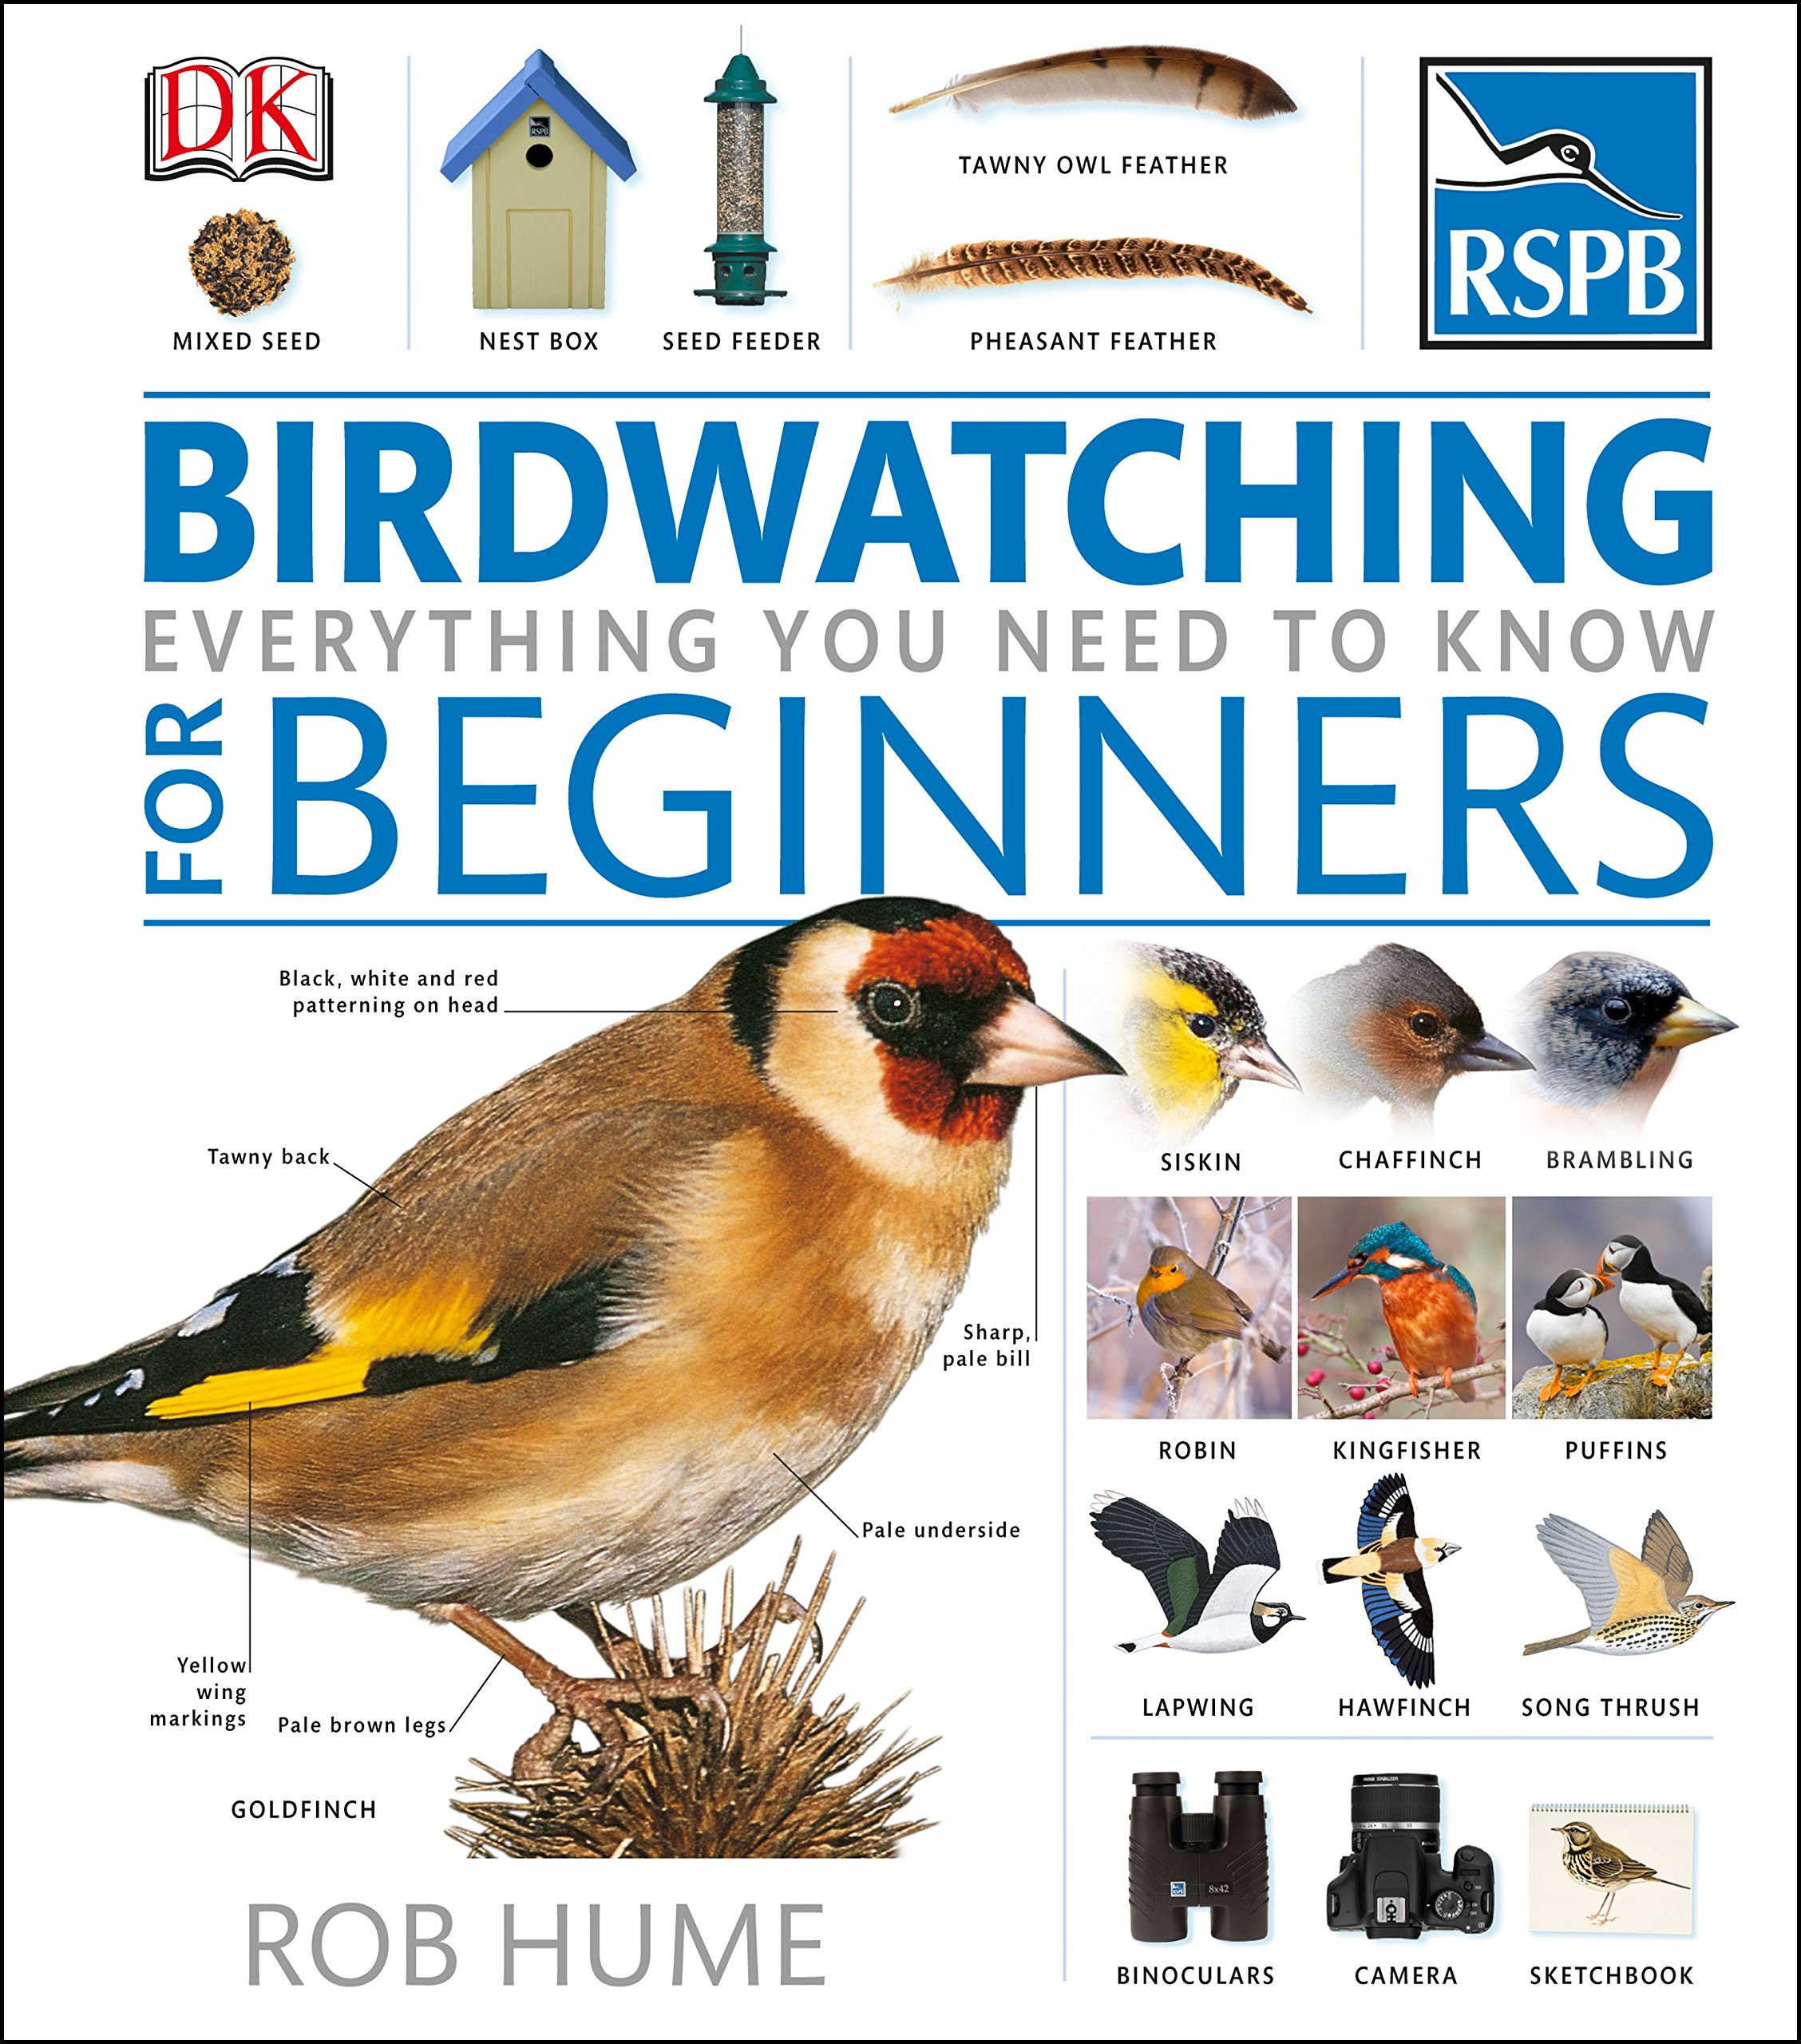 RSPB Birdwatching For Beginners Amazoncouk Rob Hume 9781409364498 Books